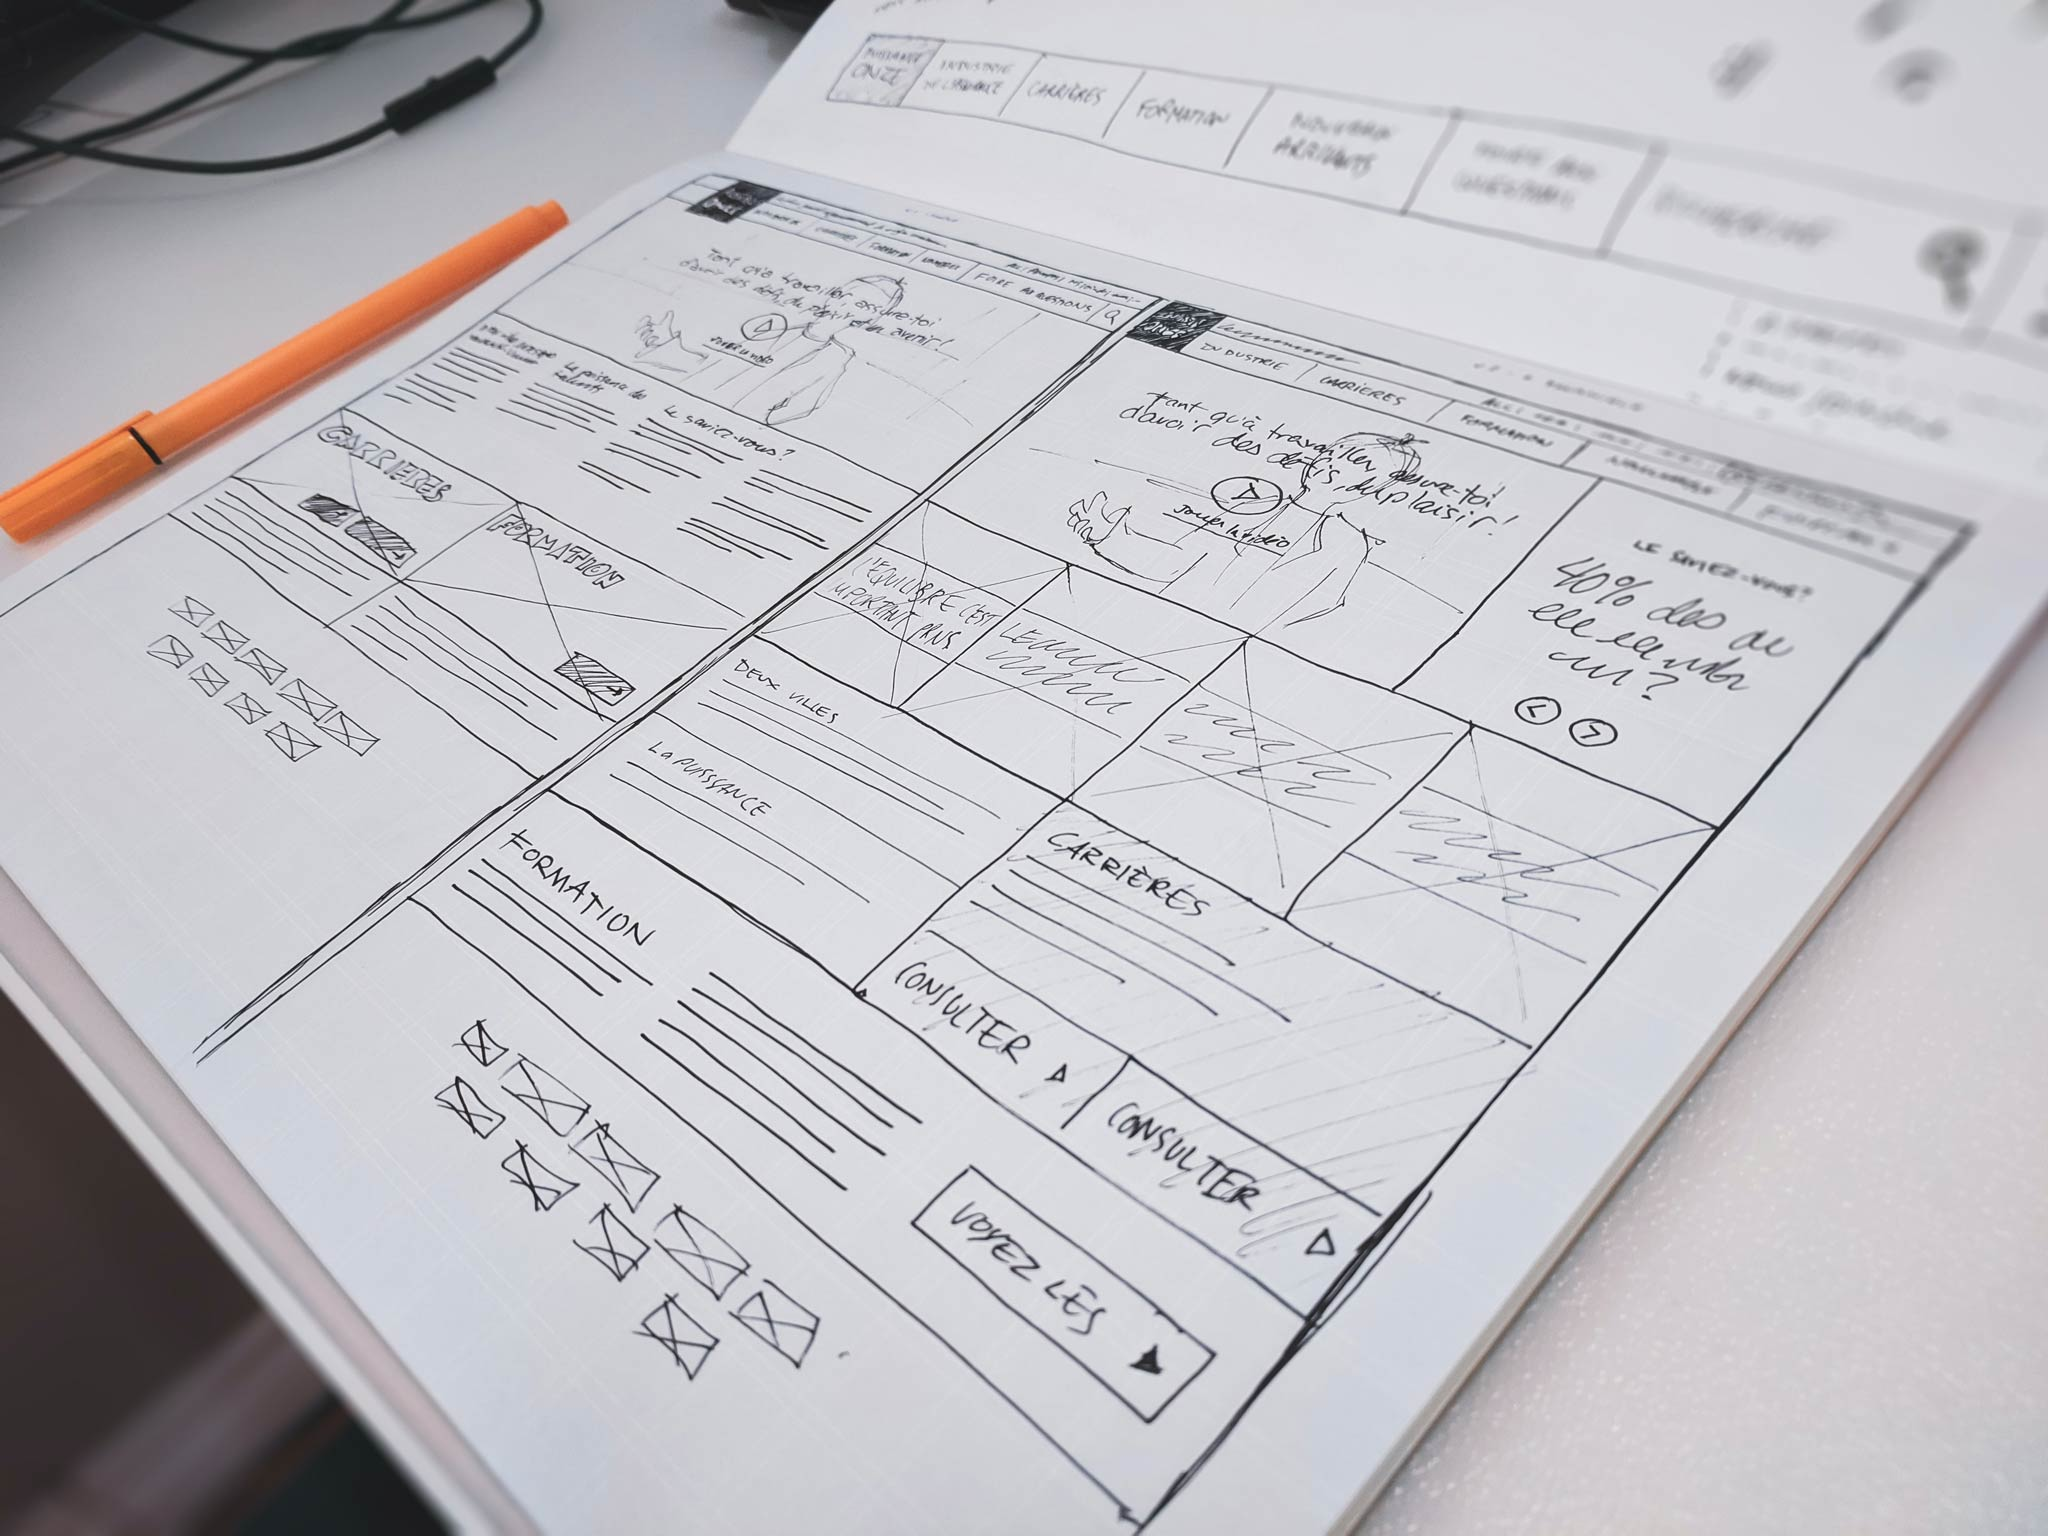 An image of a basic website wireframe